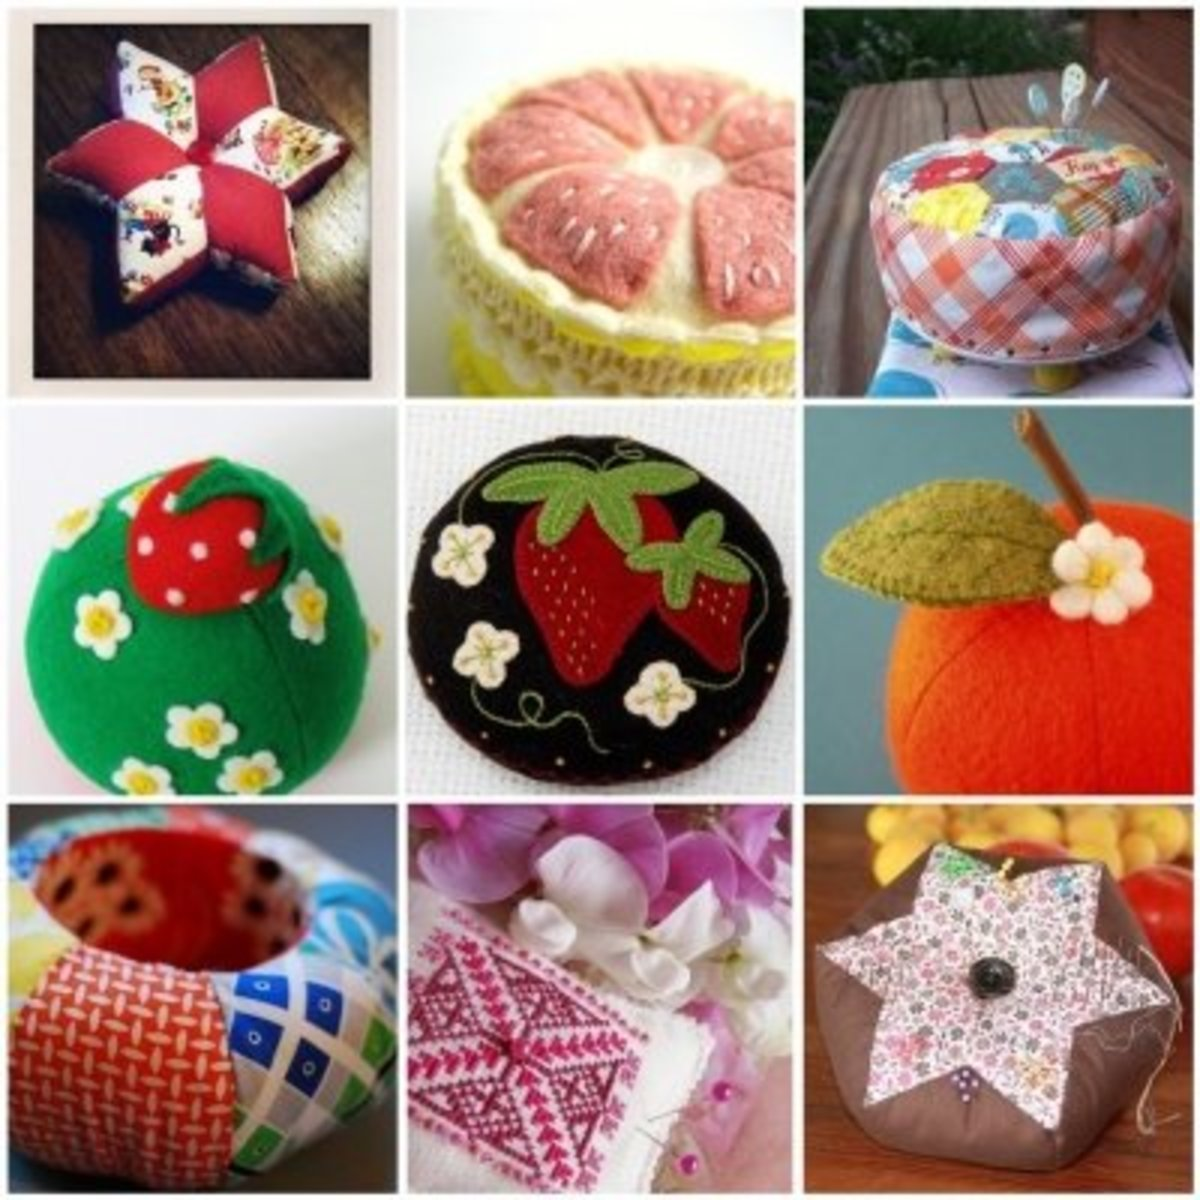 Adorable Handmade Pincushions